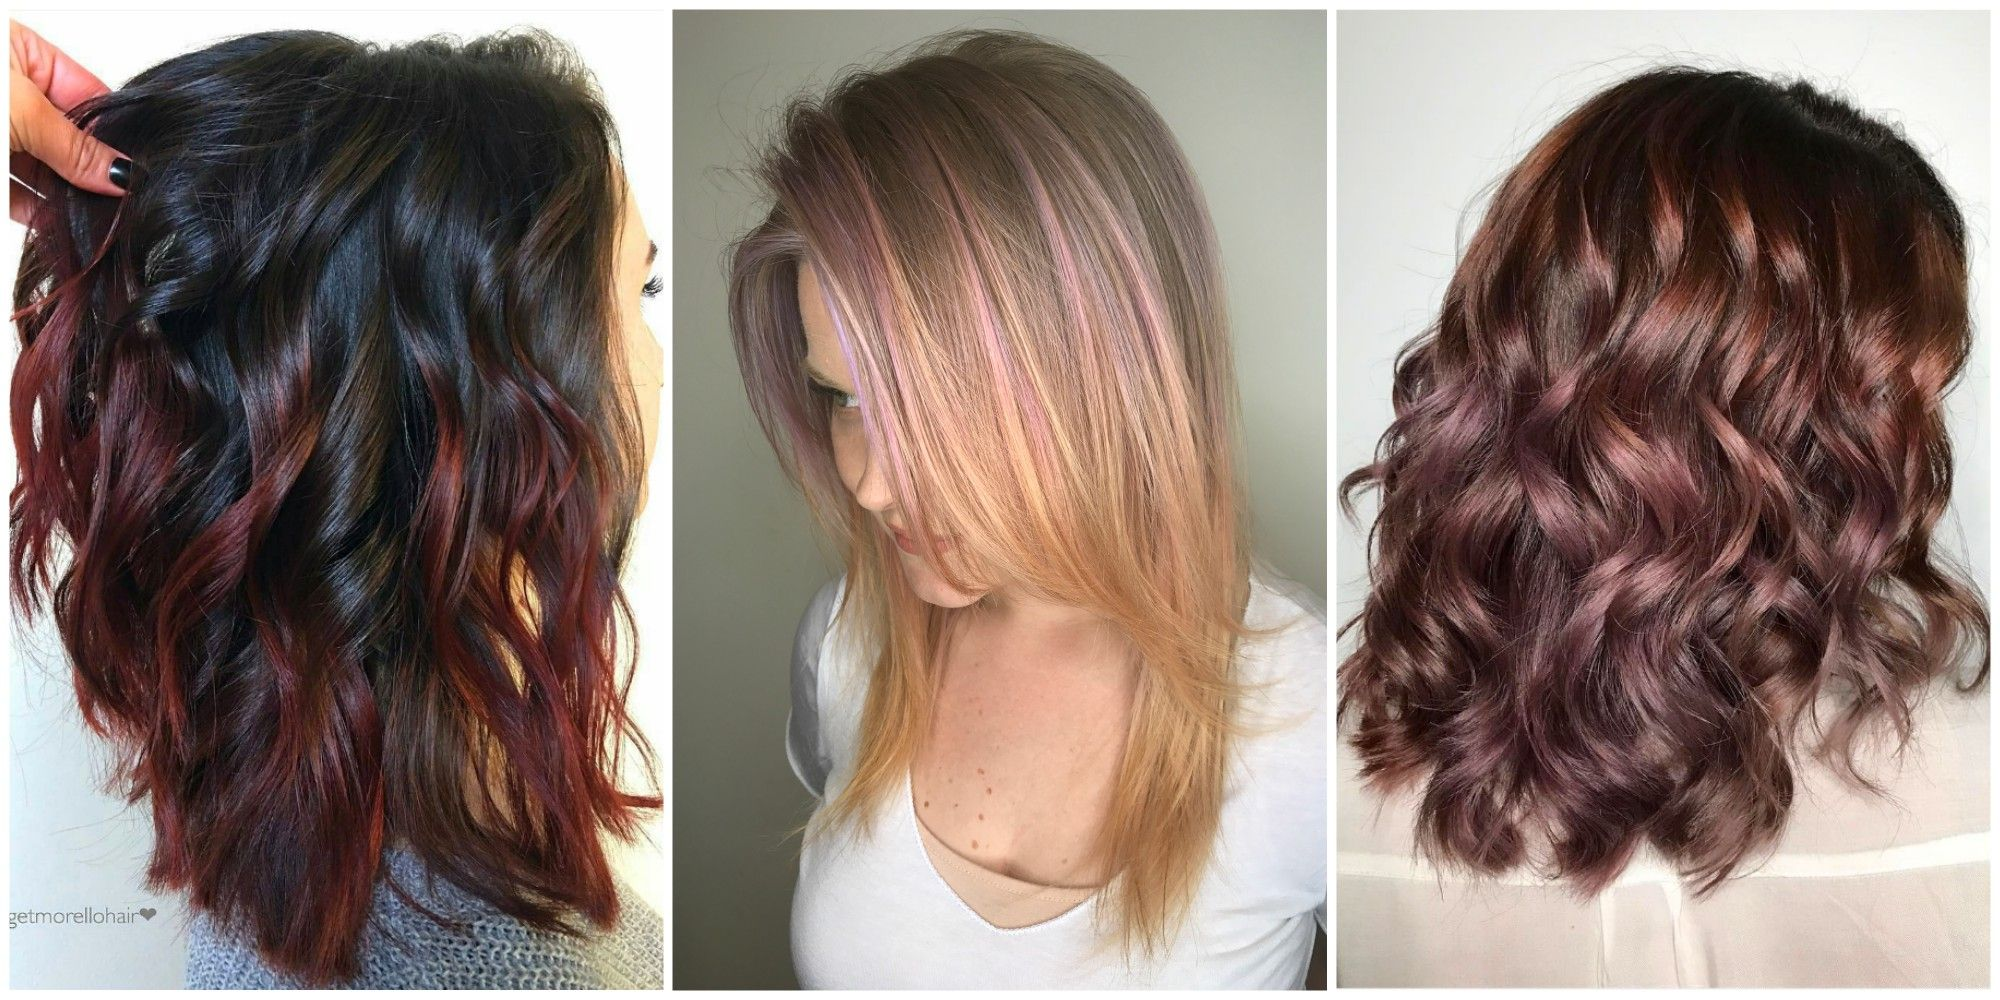 15 Subtle Hair Color Ideas 15 Ways To Add A Pretty Touch Of Color